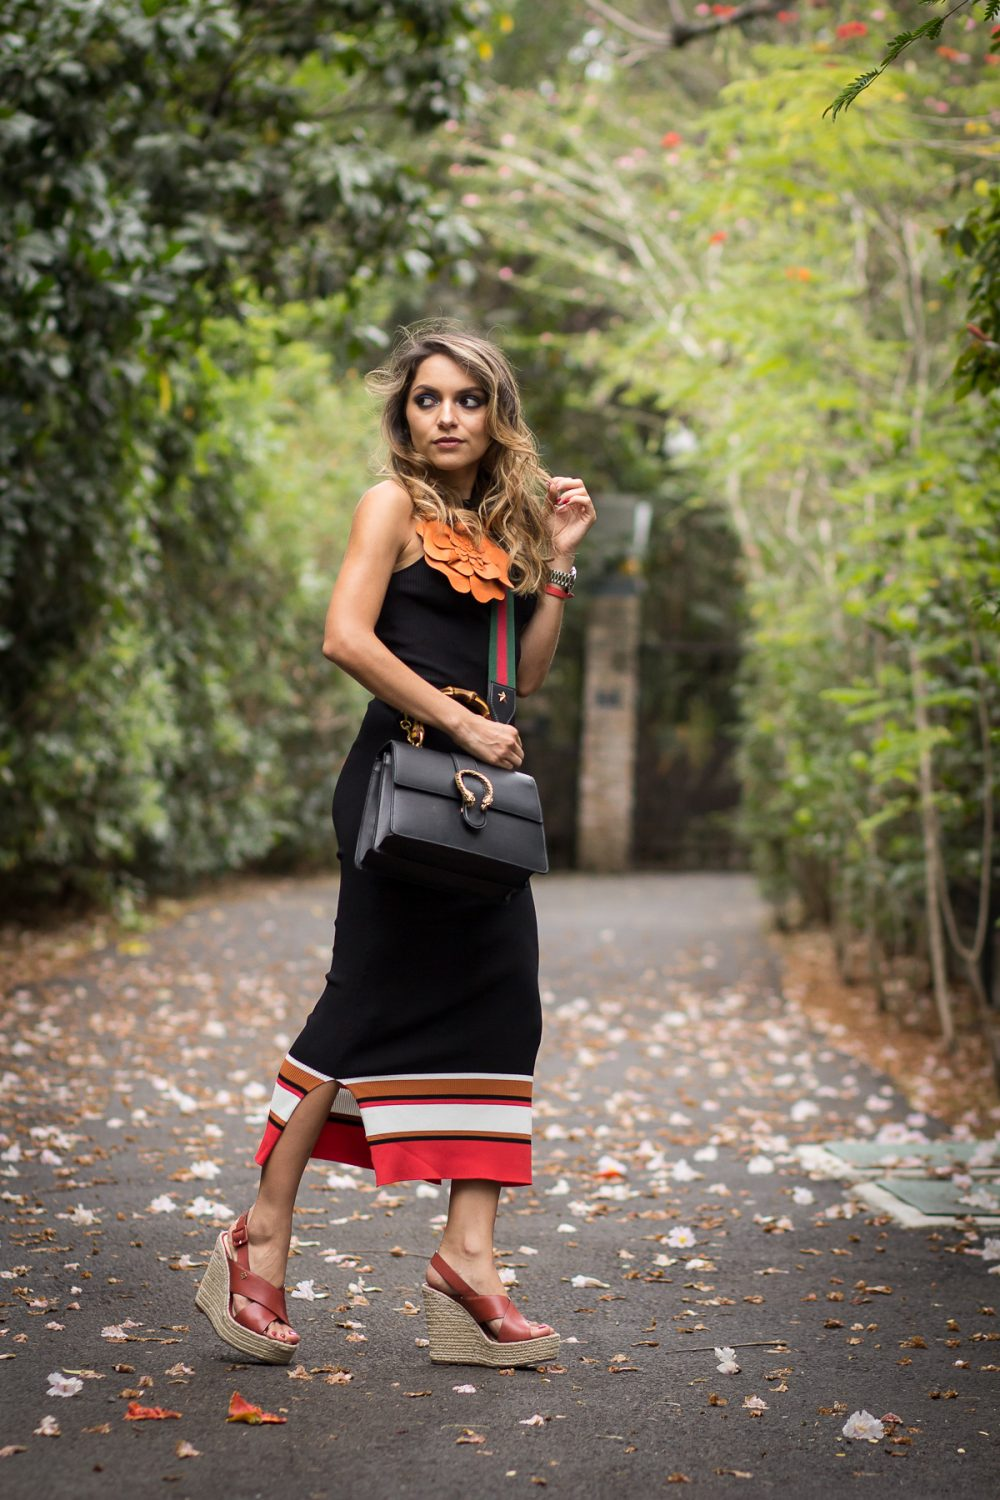 Whitney's Wonderland UK Top Costa Rican Fashion Blogger wears dionysus Gucci bag, Massimo Dutti ribbed black dress and Capodarte wedges